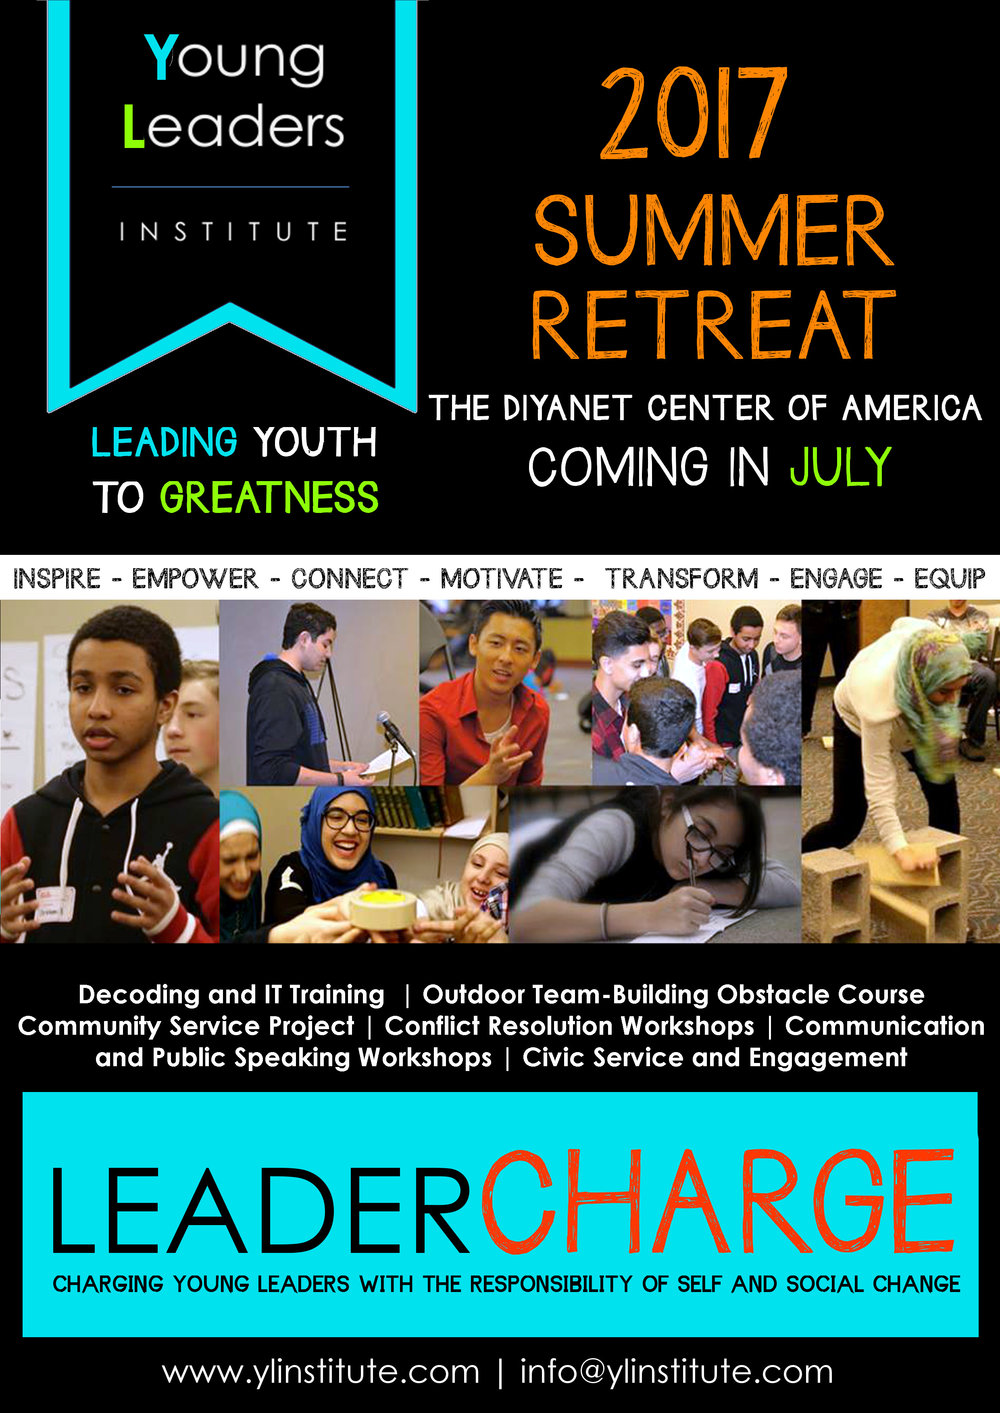 yli_2017retreat_flyer5.jpg